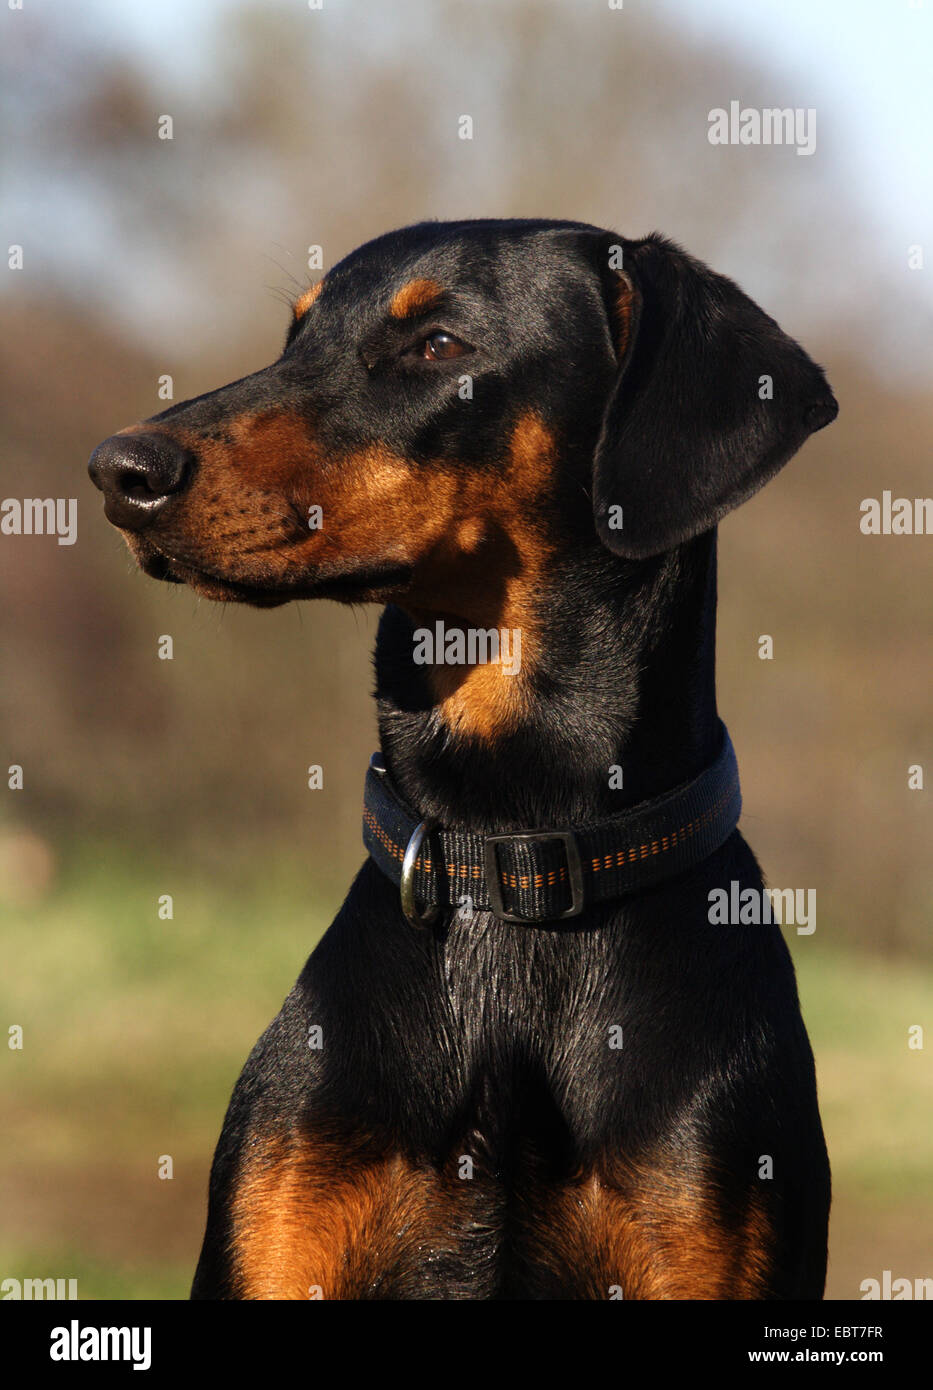 Dobermann (Canis lupus f. familiaris), portrait, Germany - Stock Image